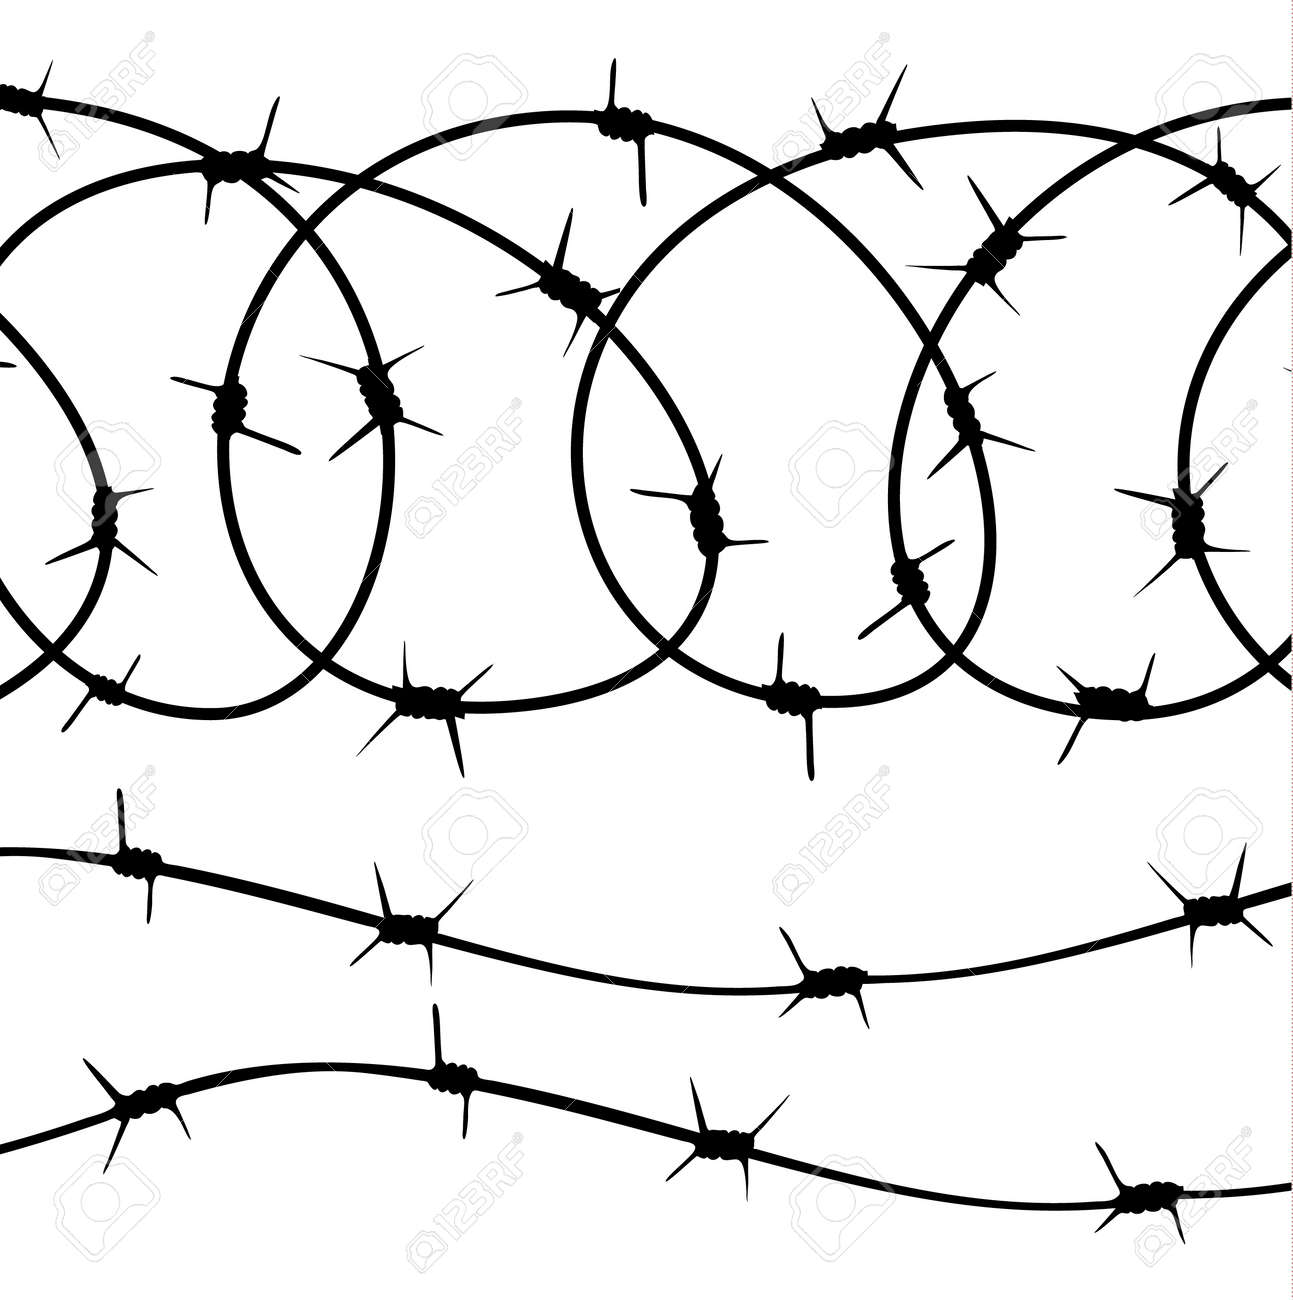 Barbed Wire Elements, Silhouette On White Background. Vector ...